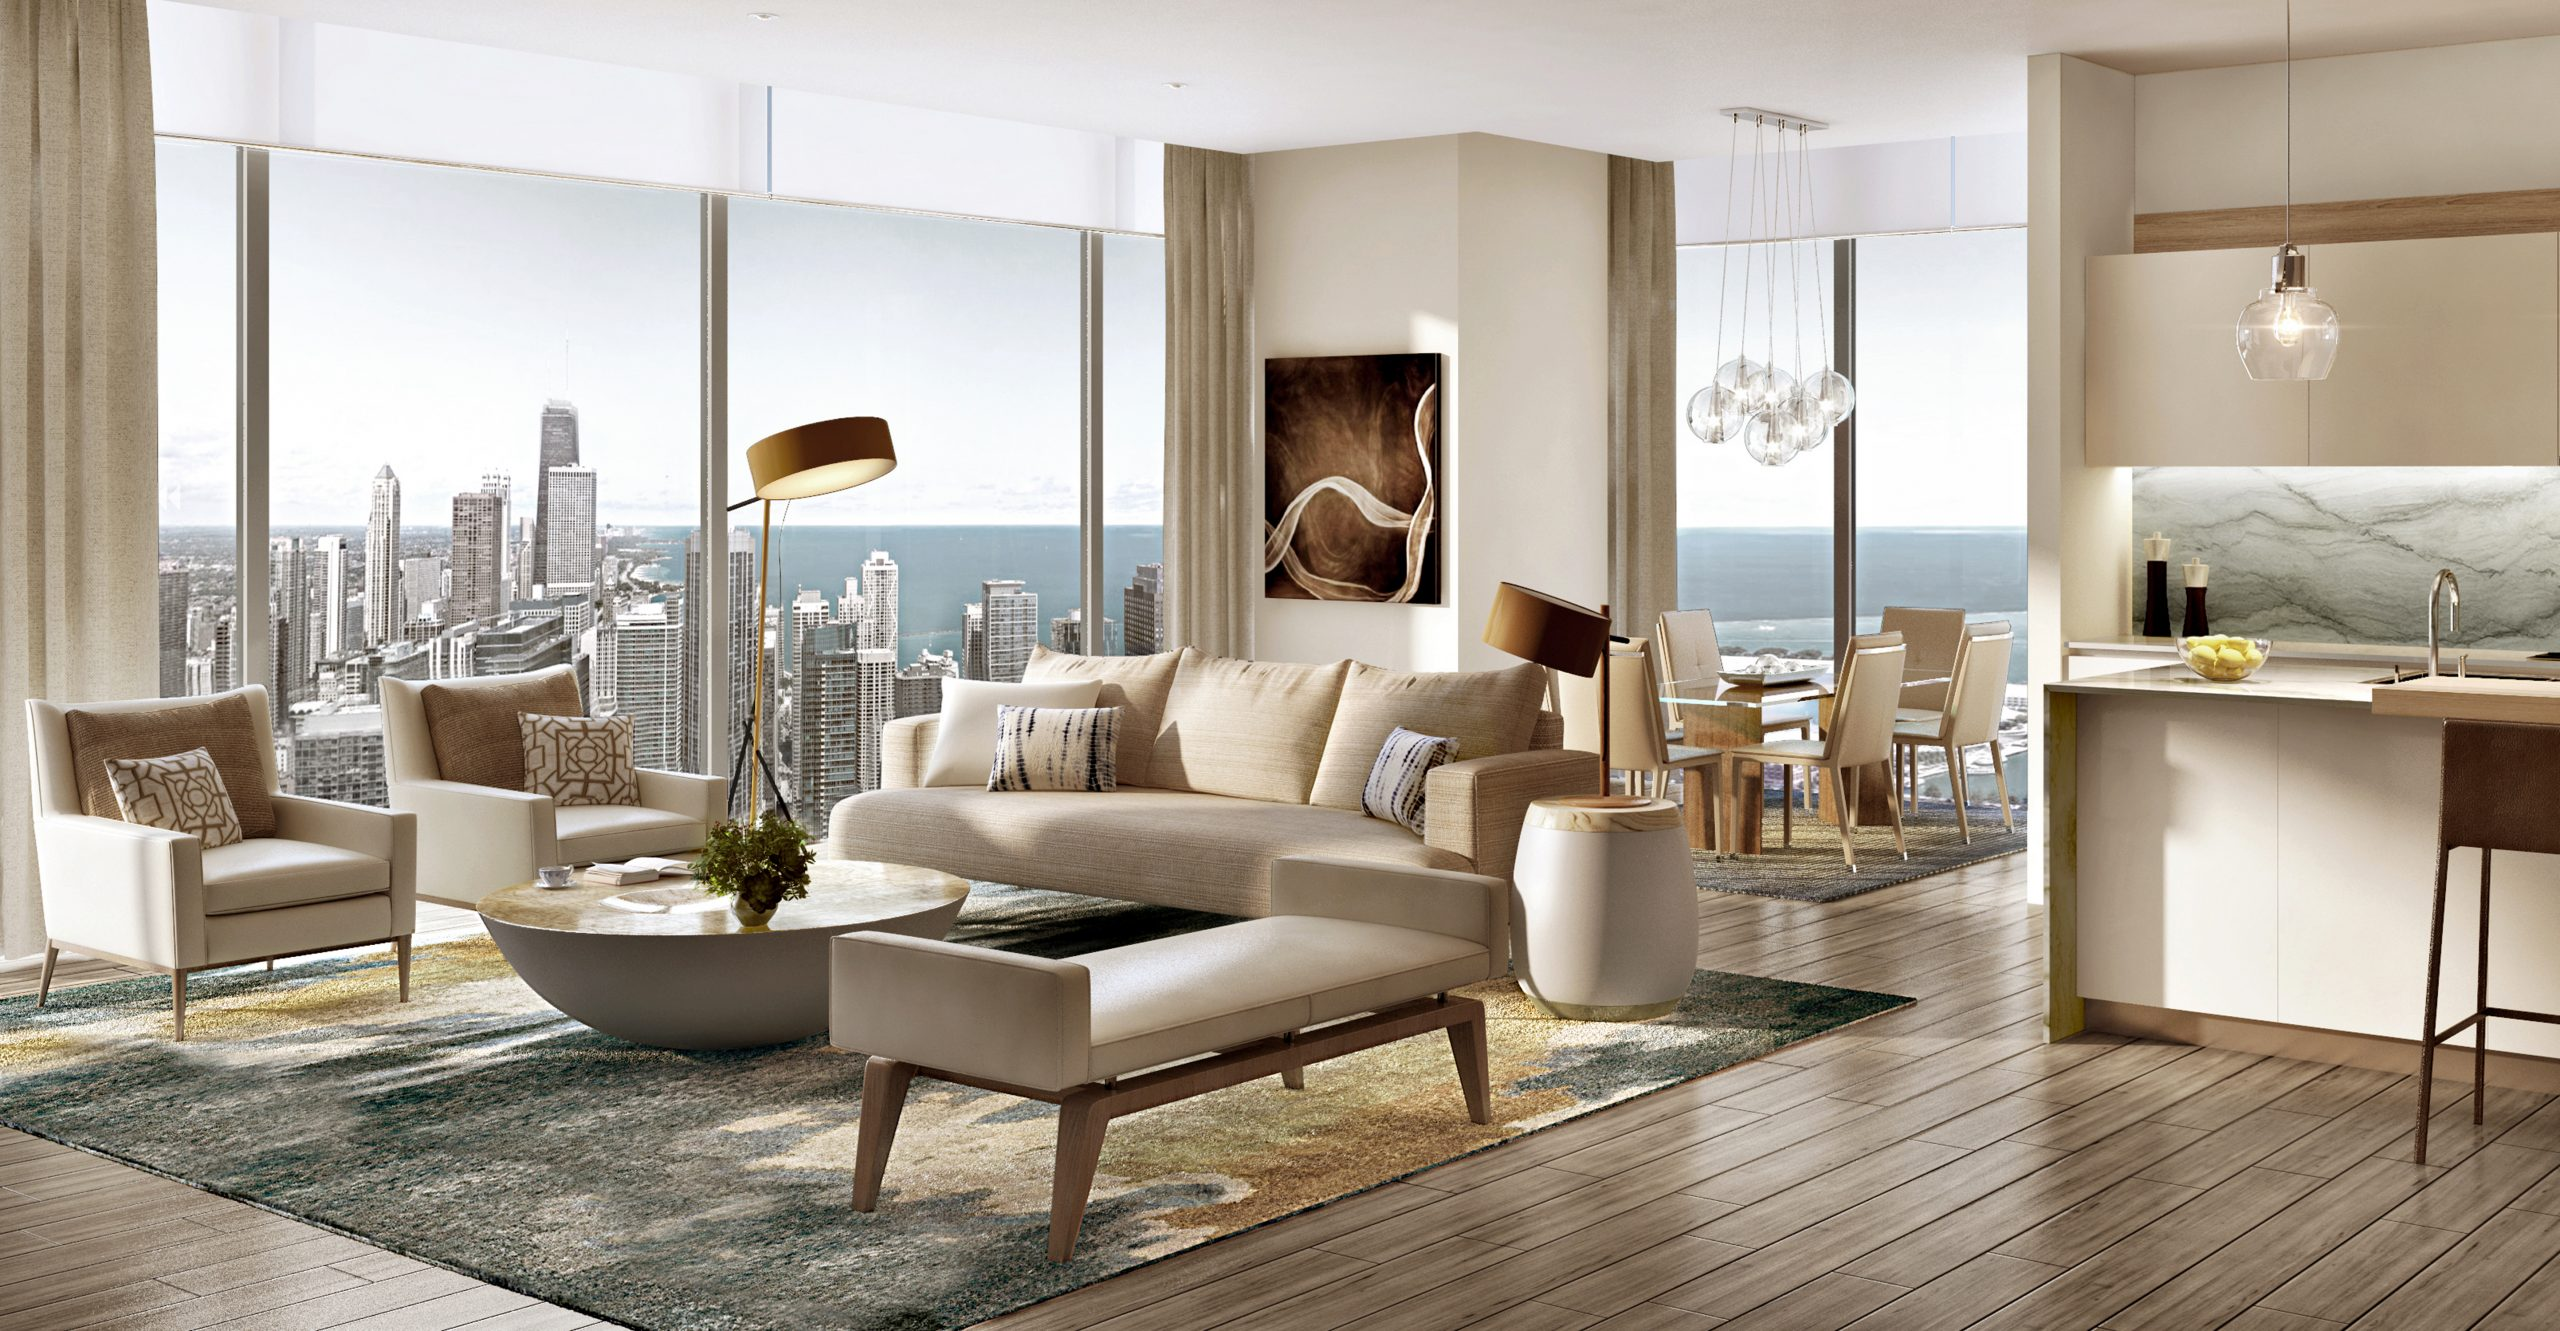 Take an Exclusive Look Inside the St. Regis Chicago's Luxury Residences